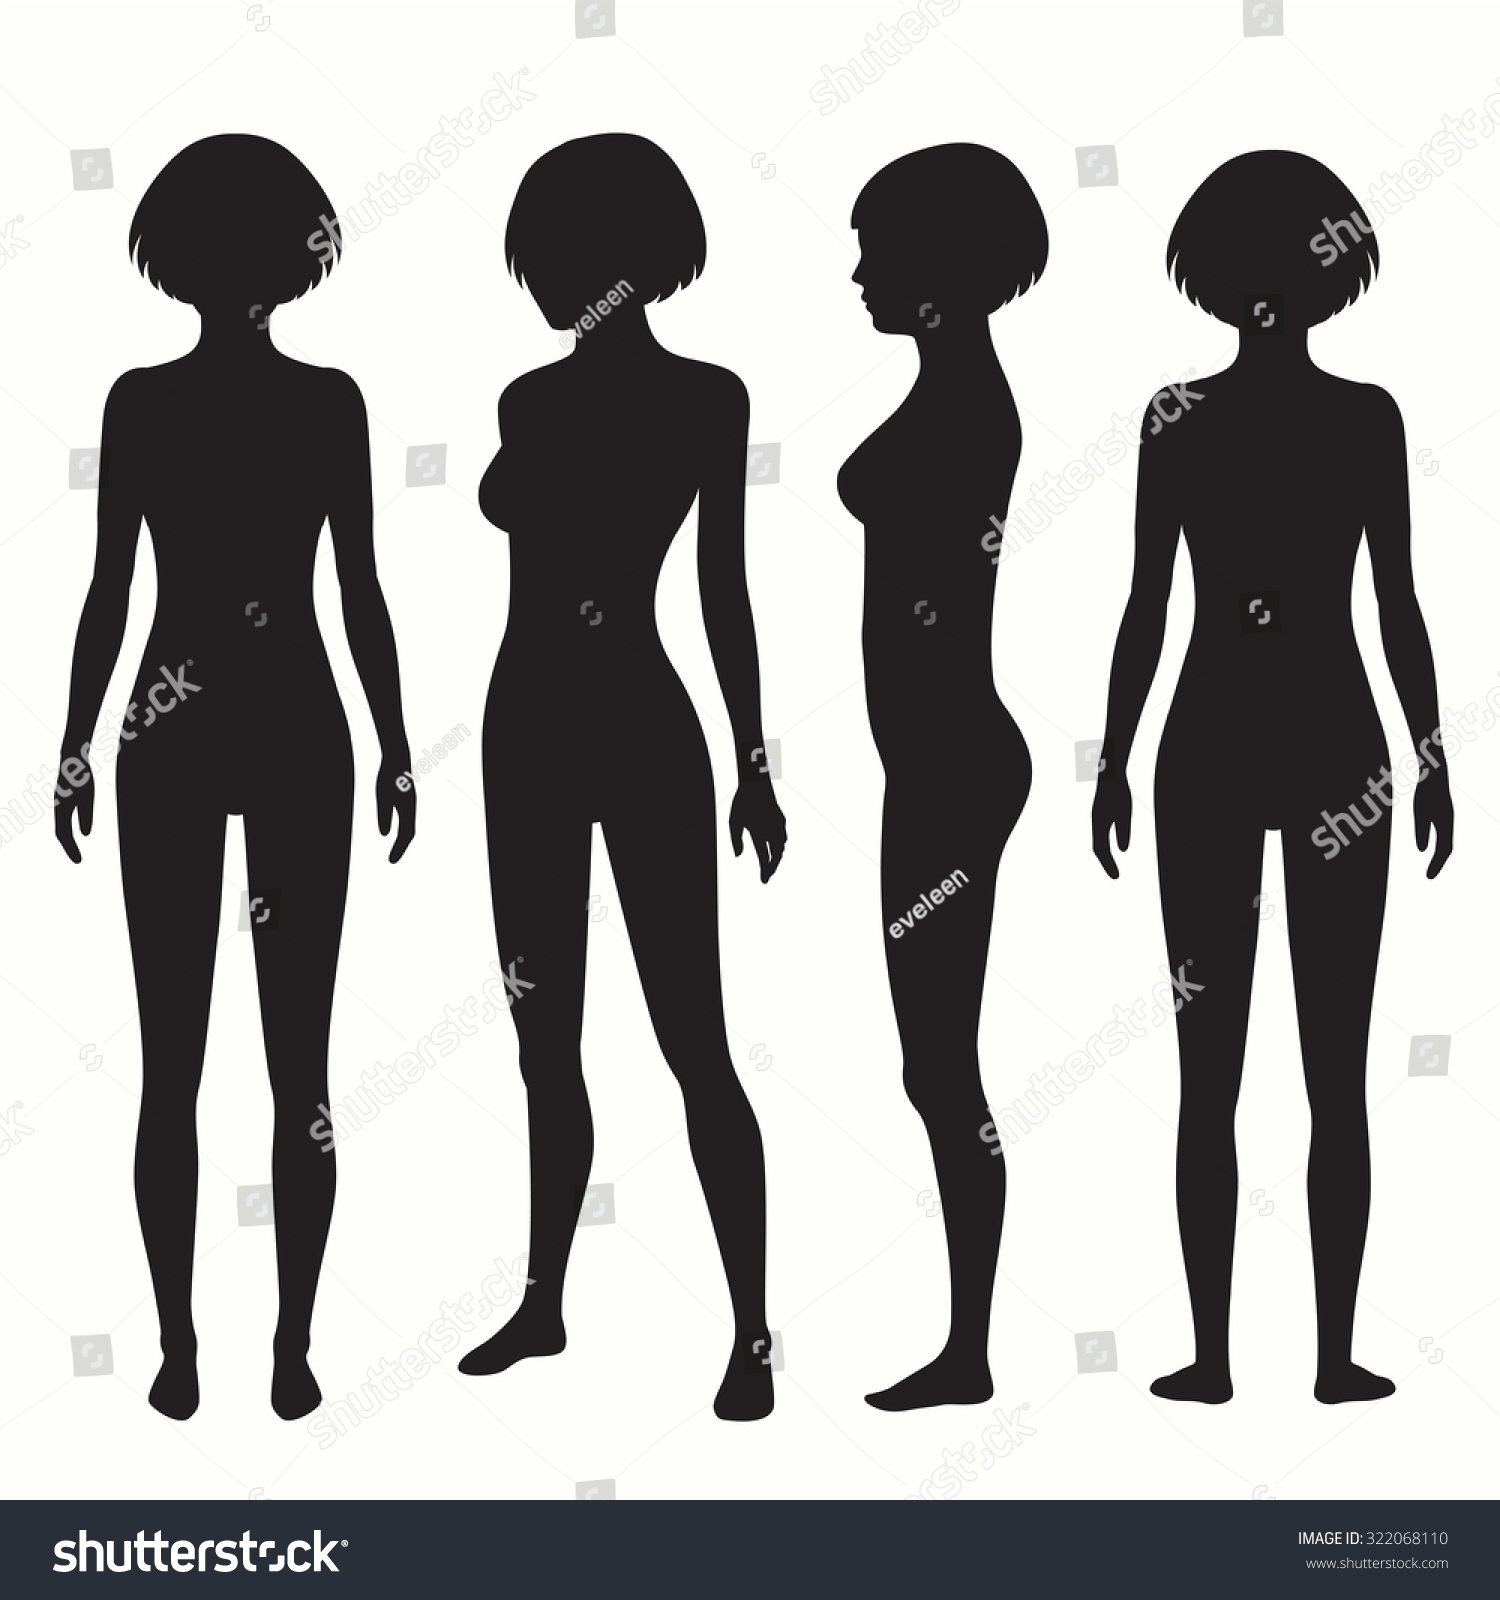 Human Body Anatomy Front Back Side Stock Vector 322068110 - Shutterstock